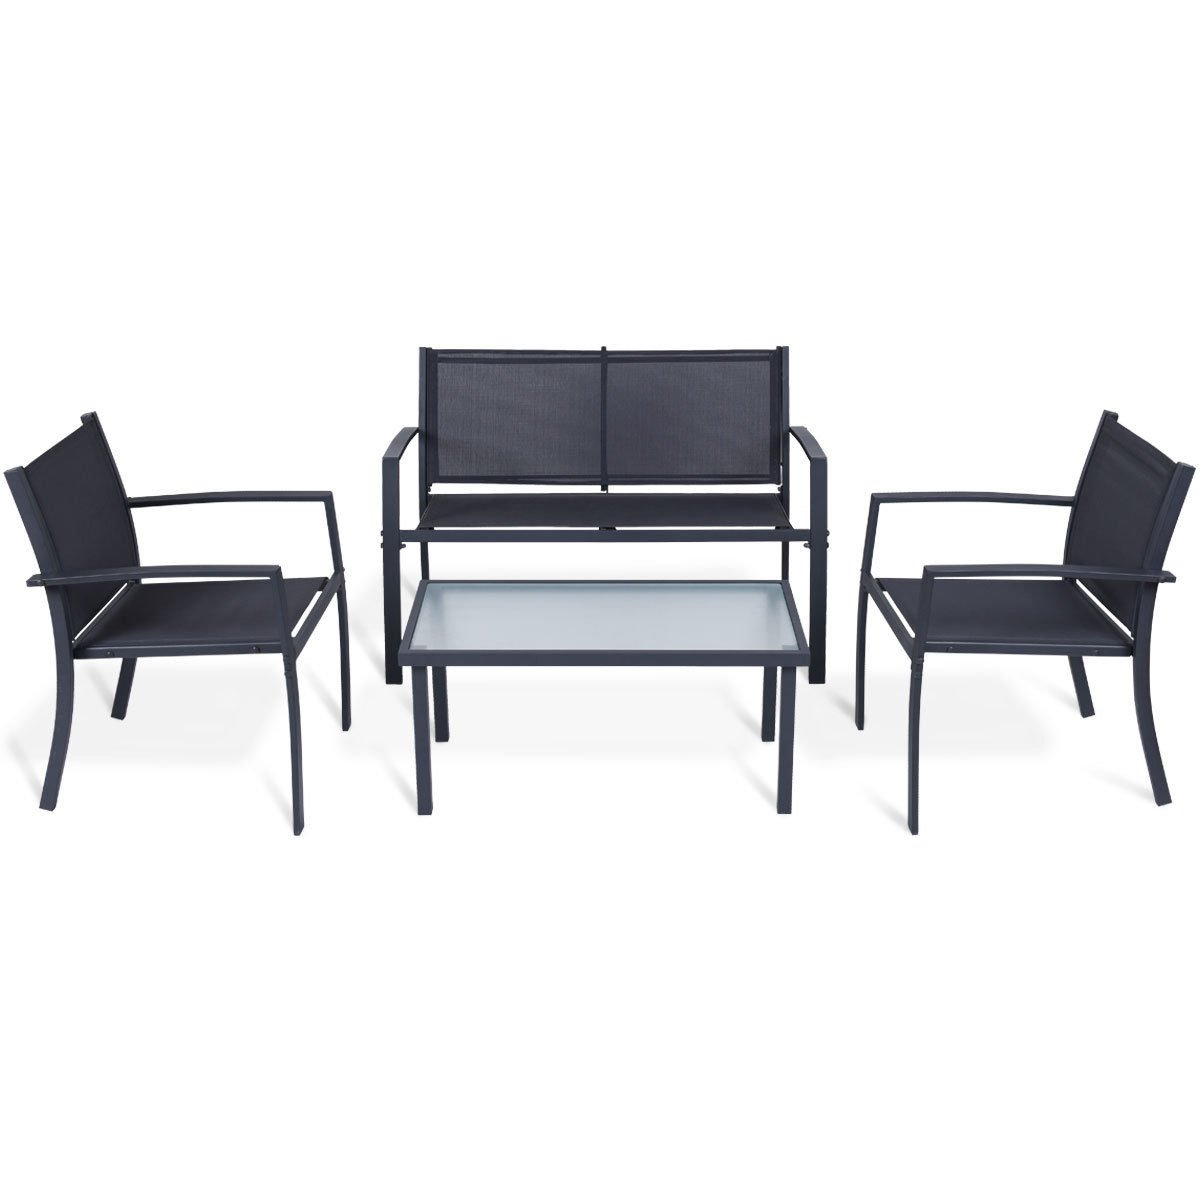 totoshop 4 PCS Outdoor Patio Furniture Set Tempered Glass Table Loveseat Chairs Steel